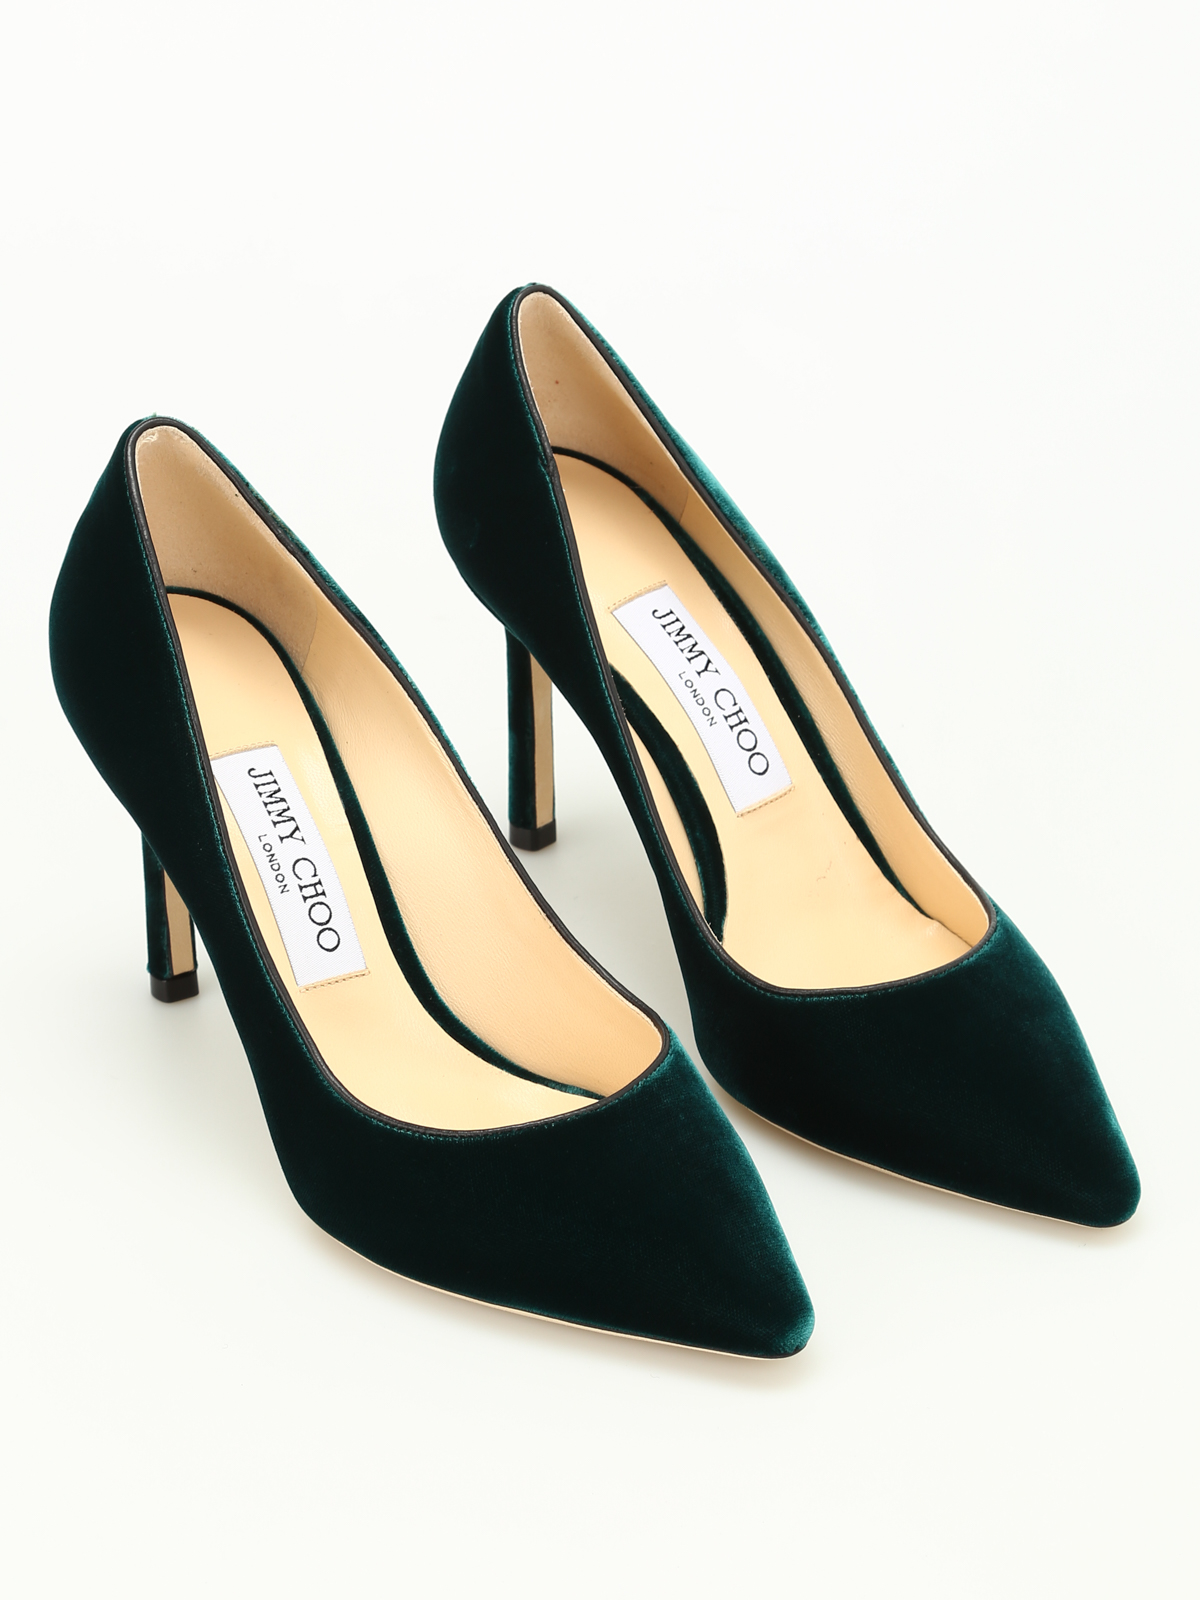 Romy 85 suede pumps Jimmy Choo London yaCEwscwar